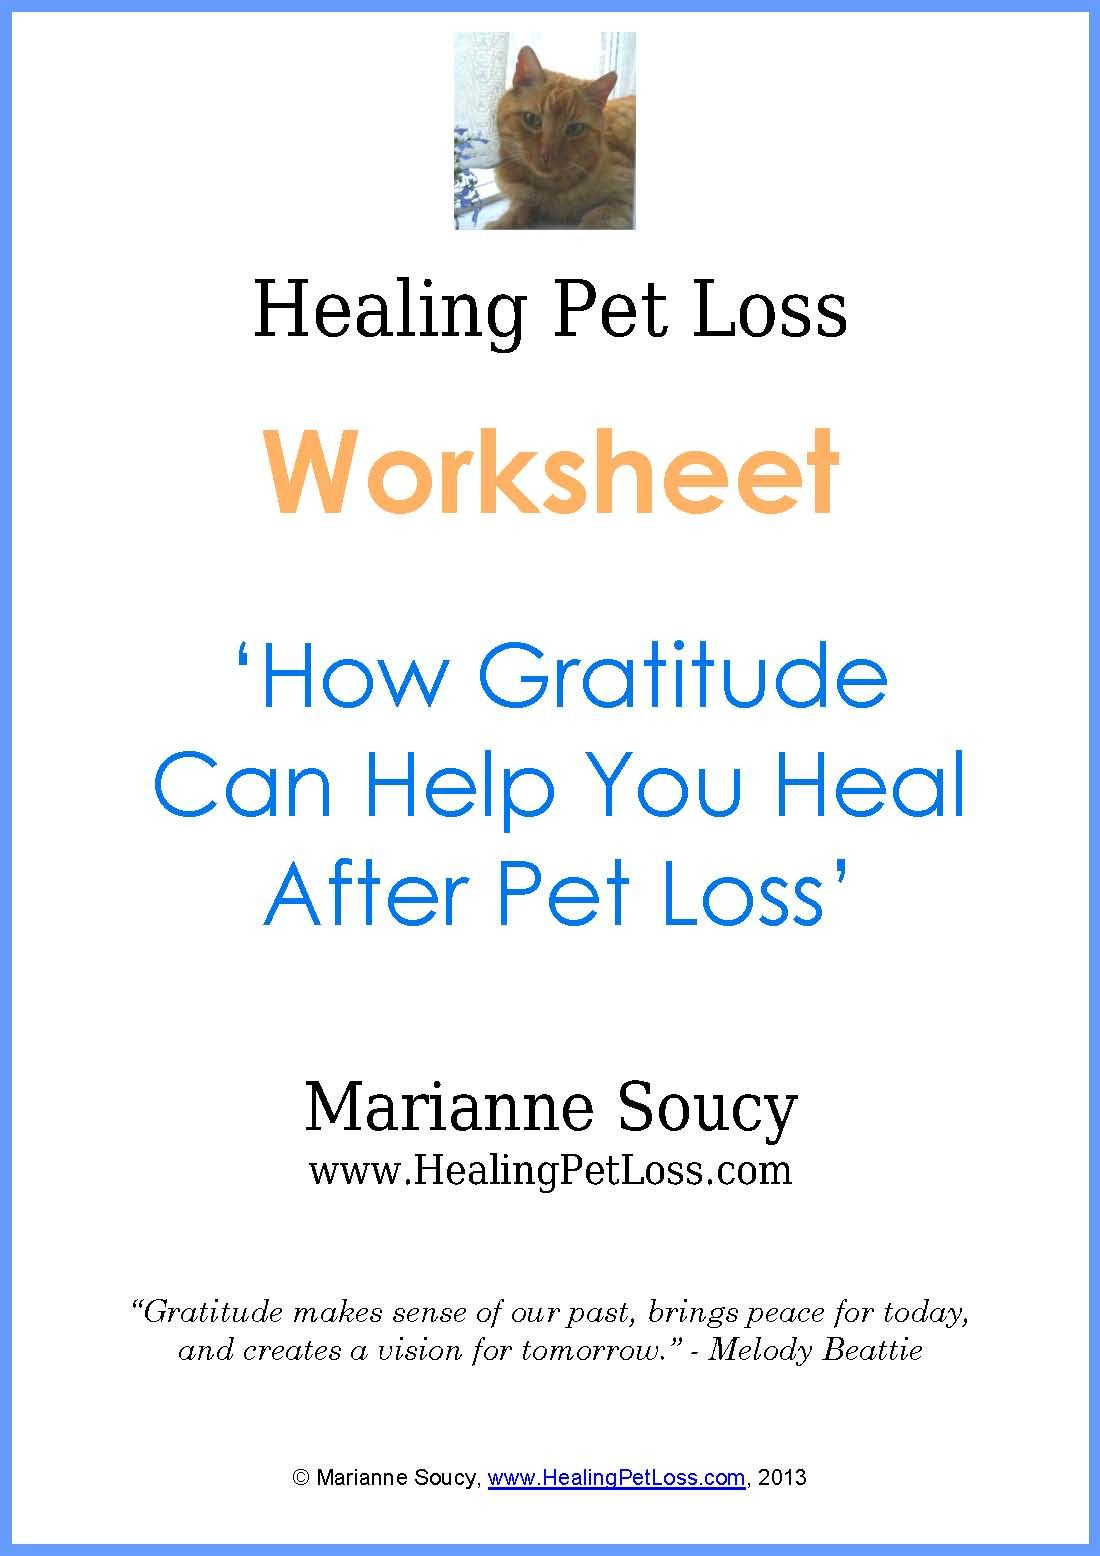 How The Power Of Gratitude Can Help You Heal After Pet